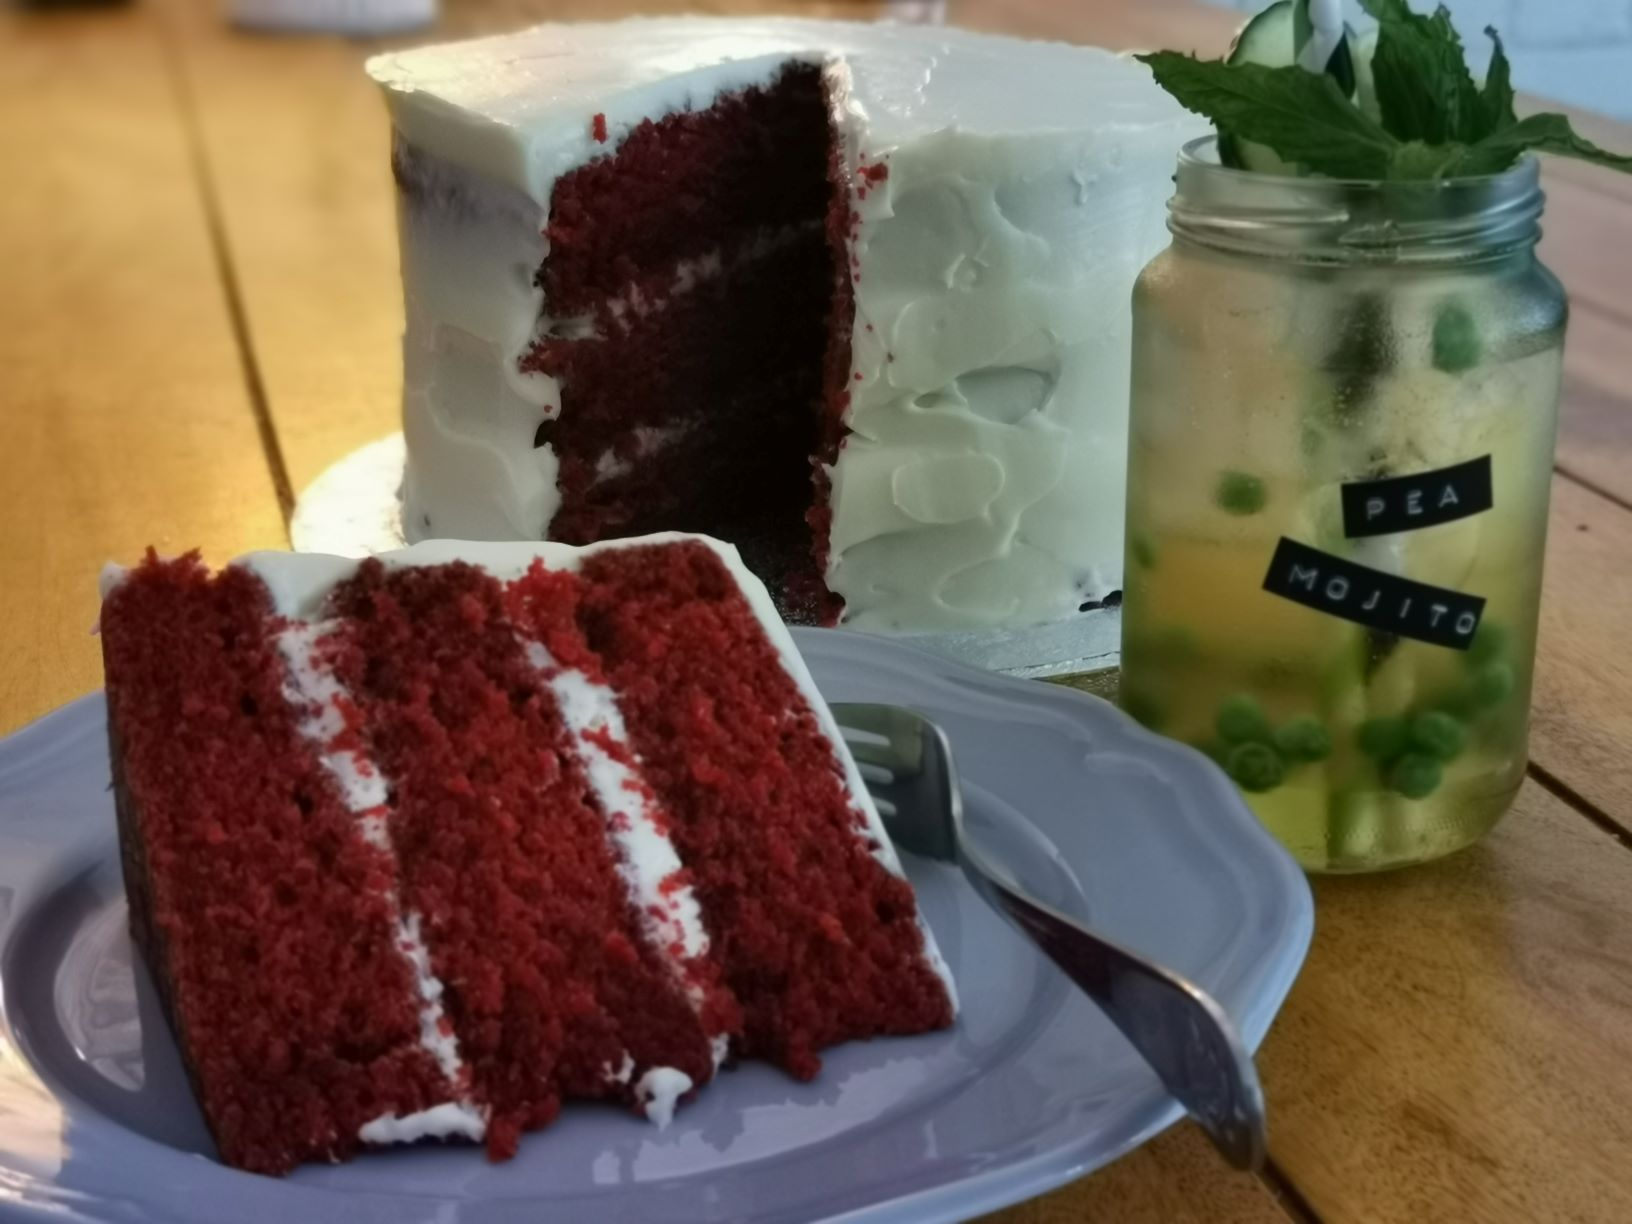 Cake and kocktail with The Twisted Drink Co